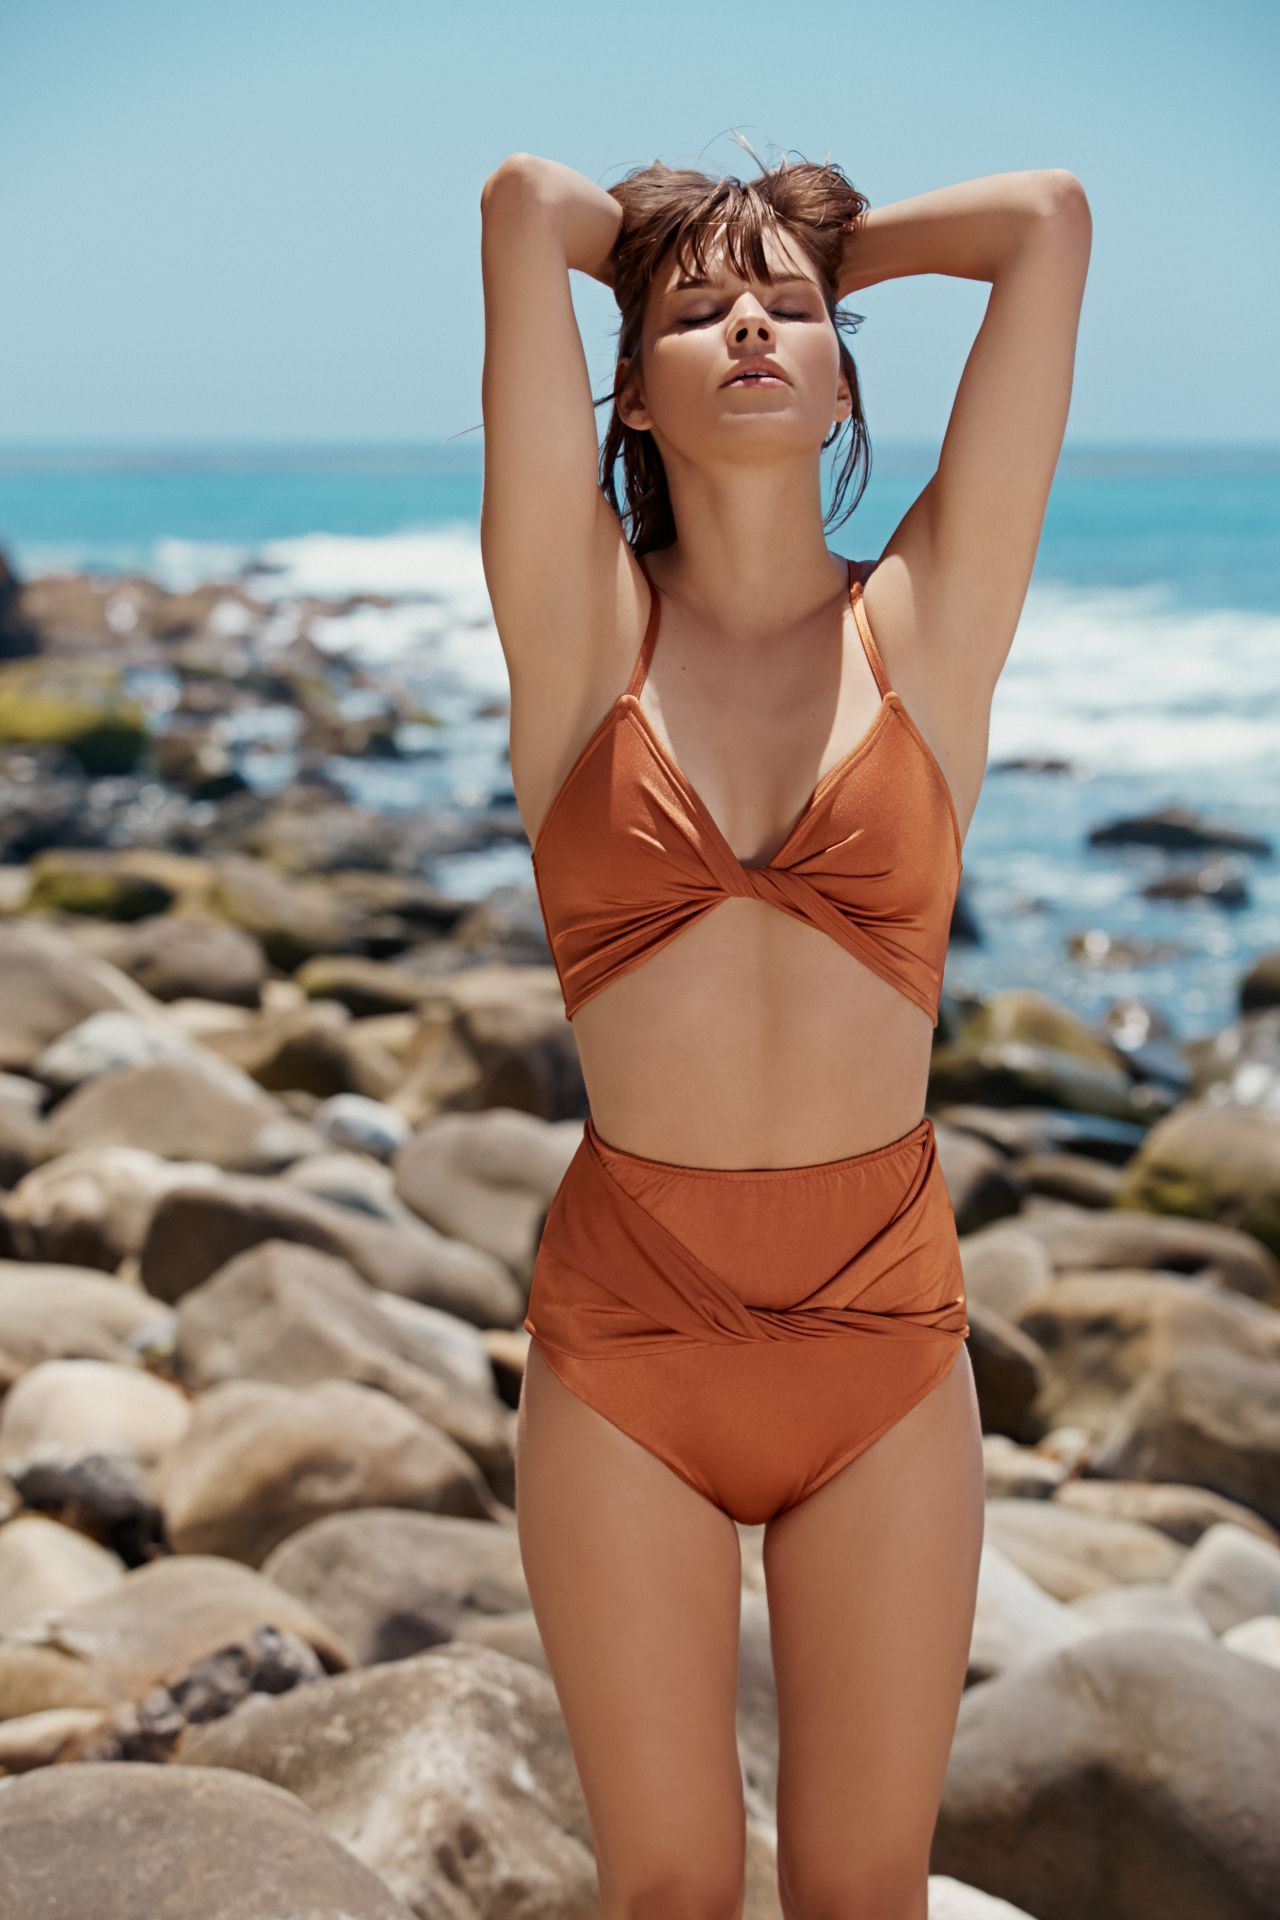 Julie Beekman Free People Bikini Collection 2015